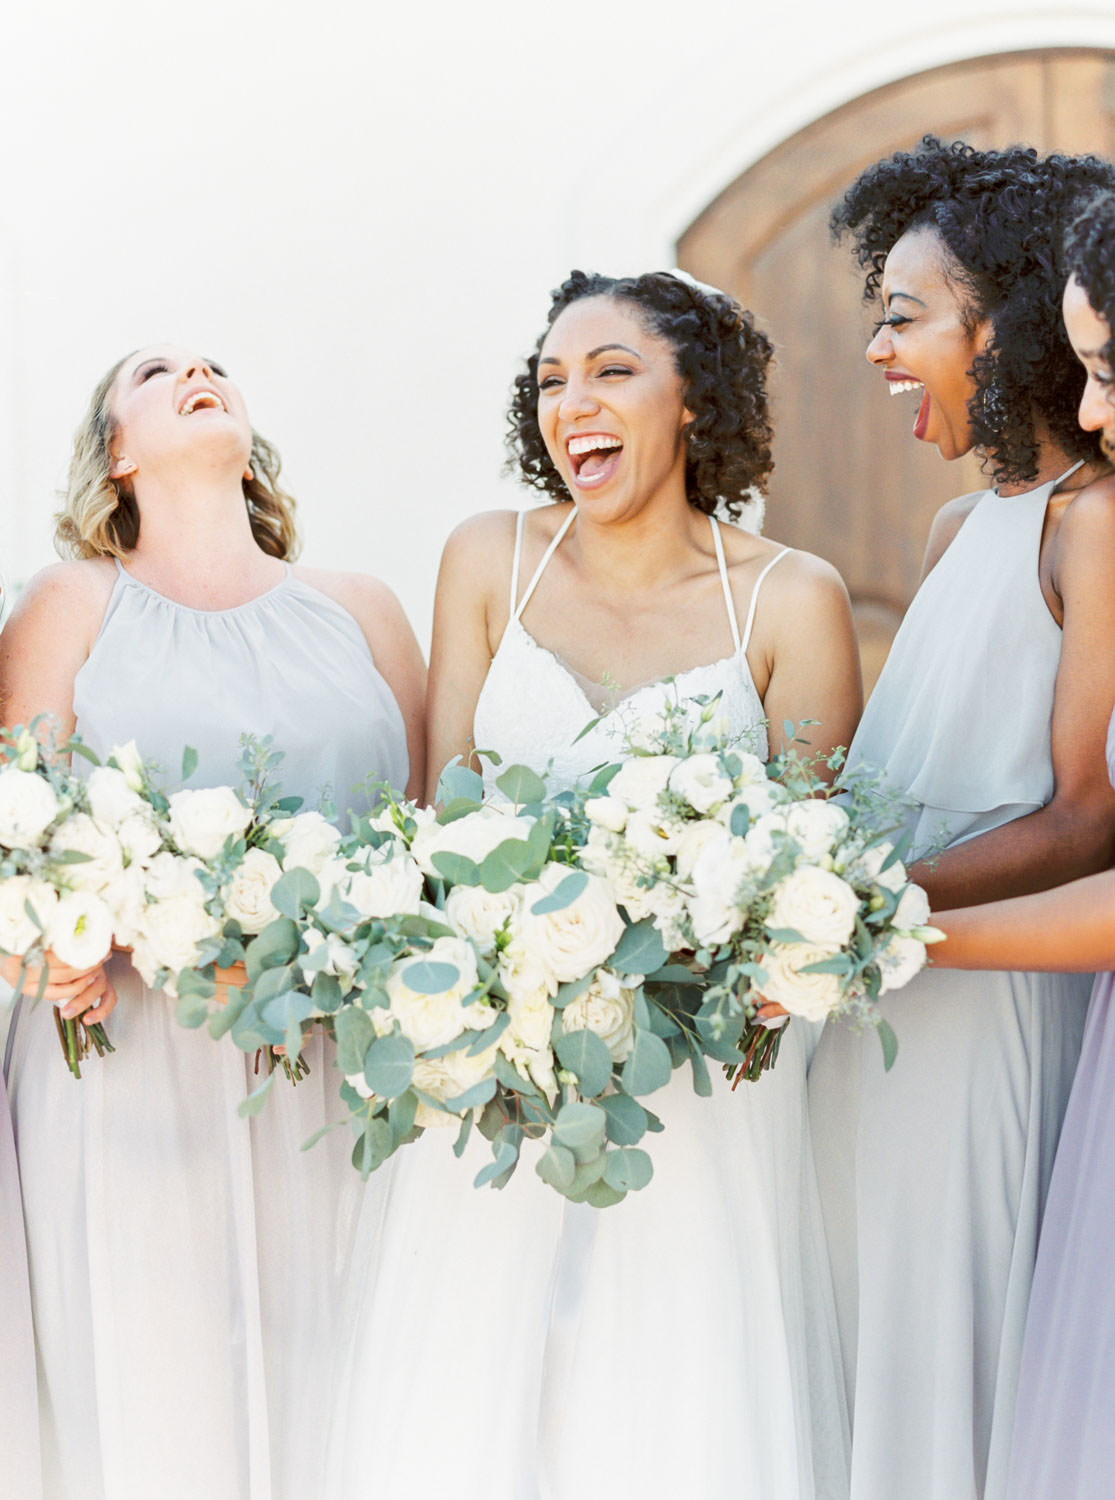 Bridal party film portrait of bridesmaids in grey and lavender dresses with white and green flowers at Temecula Wedding at Villa De Amore, Cavin Elizabeth Photography